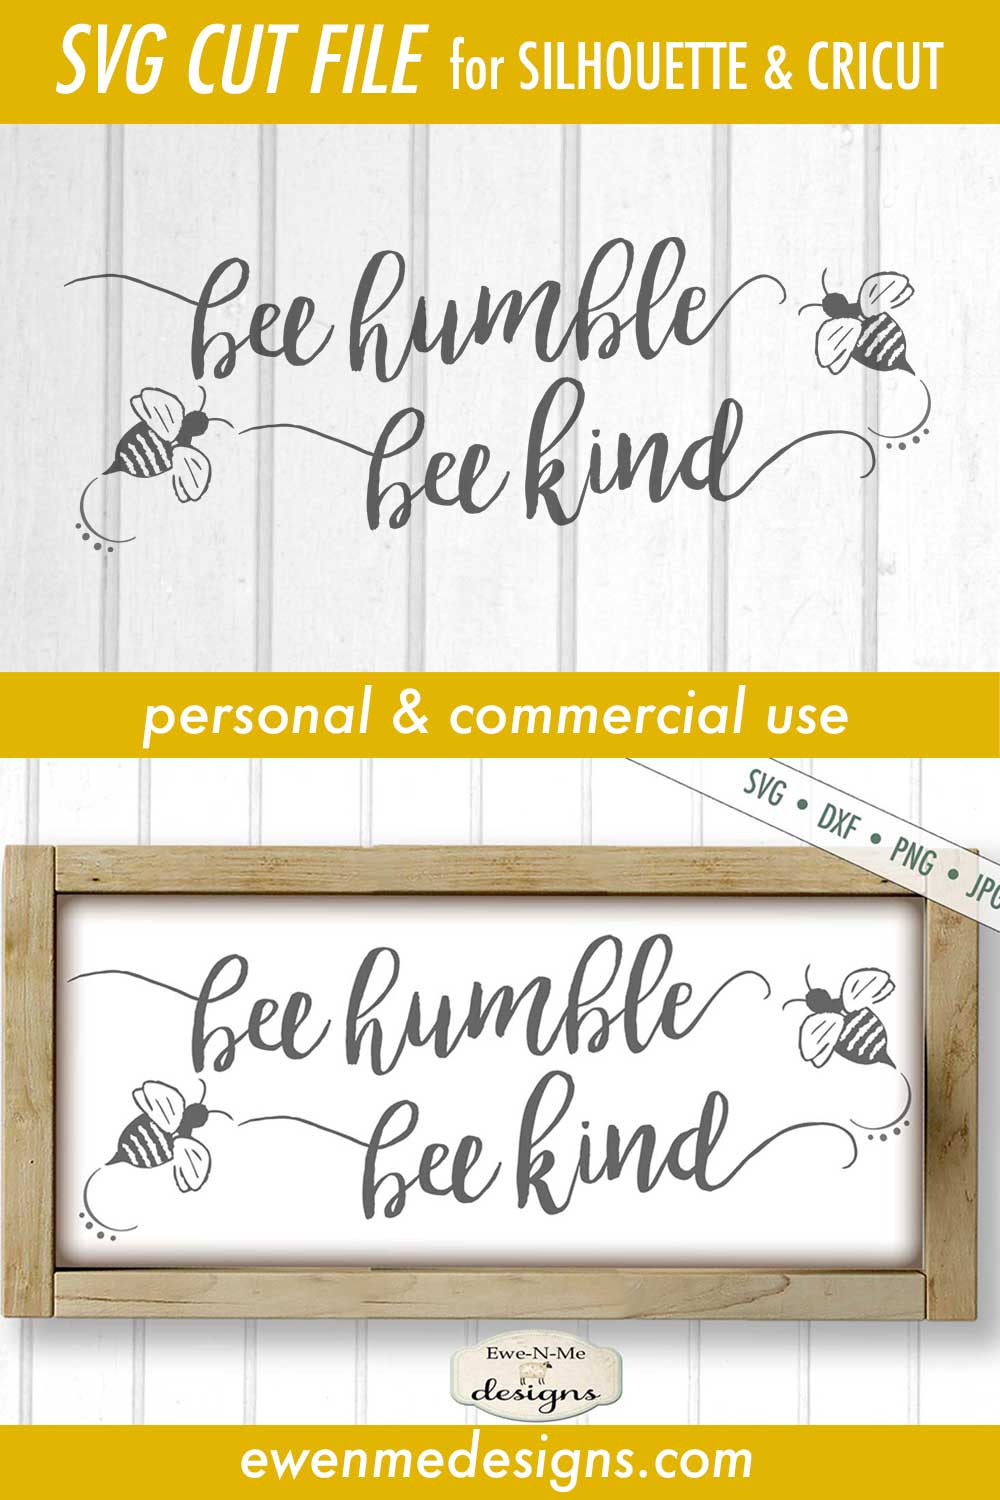 Bee Humble Bee Kind SVG DXF File example image 3